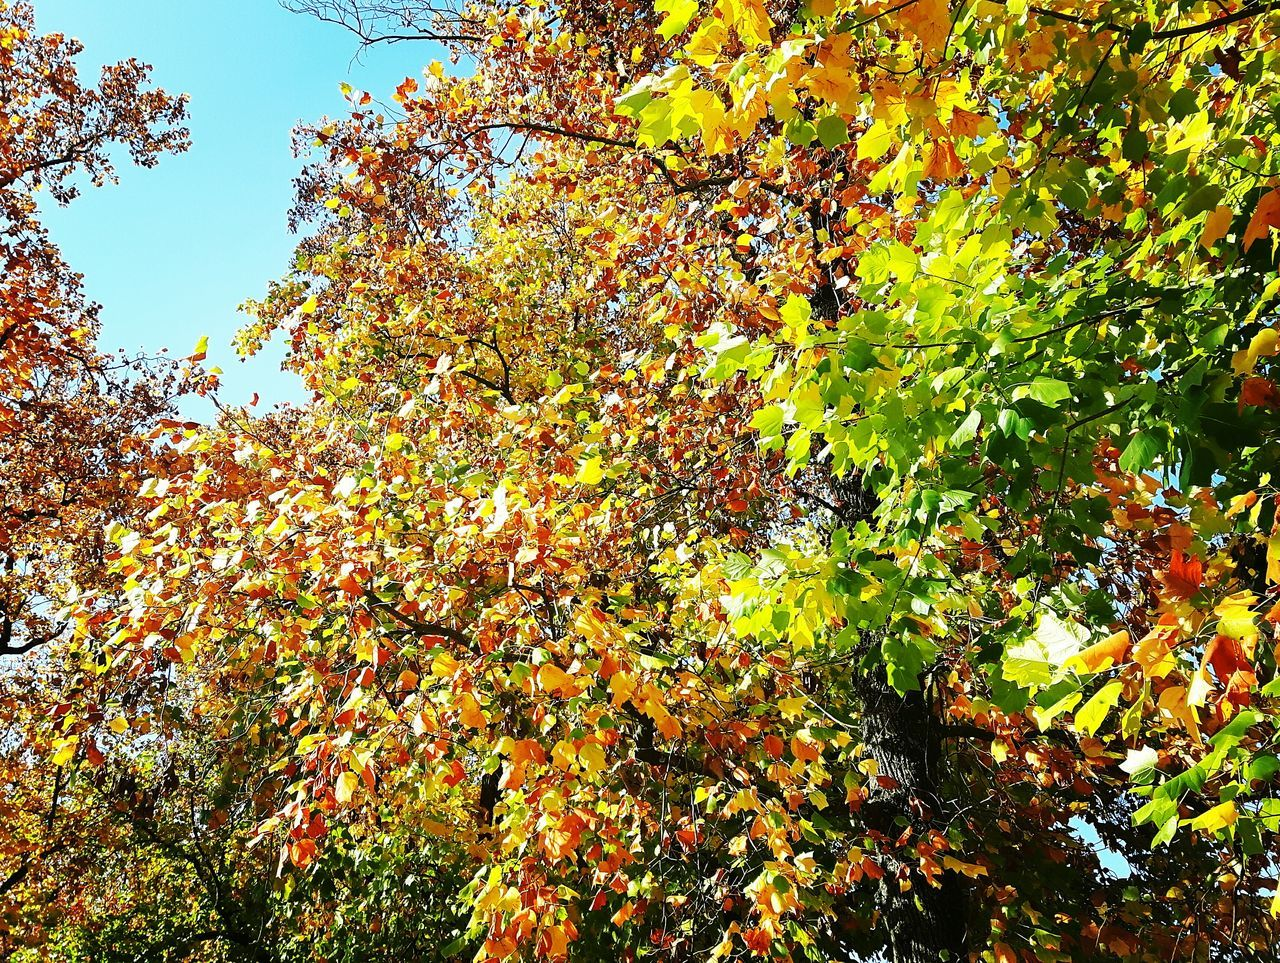 tree, growth, autumn, nature, leaf, beauty in nature, change, day, branch, low angle view, outdoors, no people, fruit, freshness, close-up